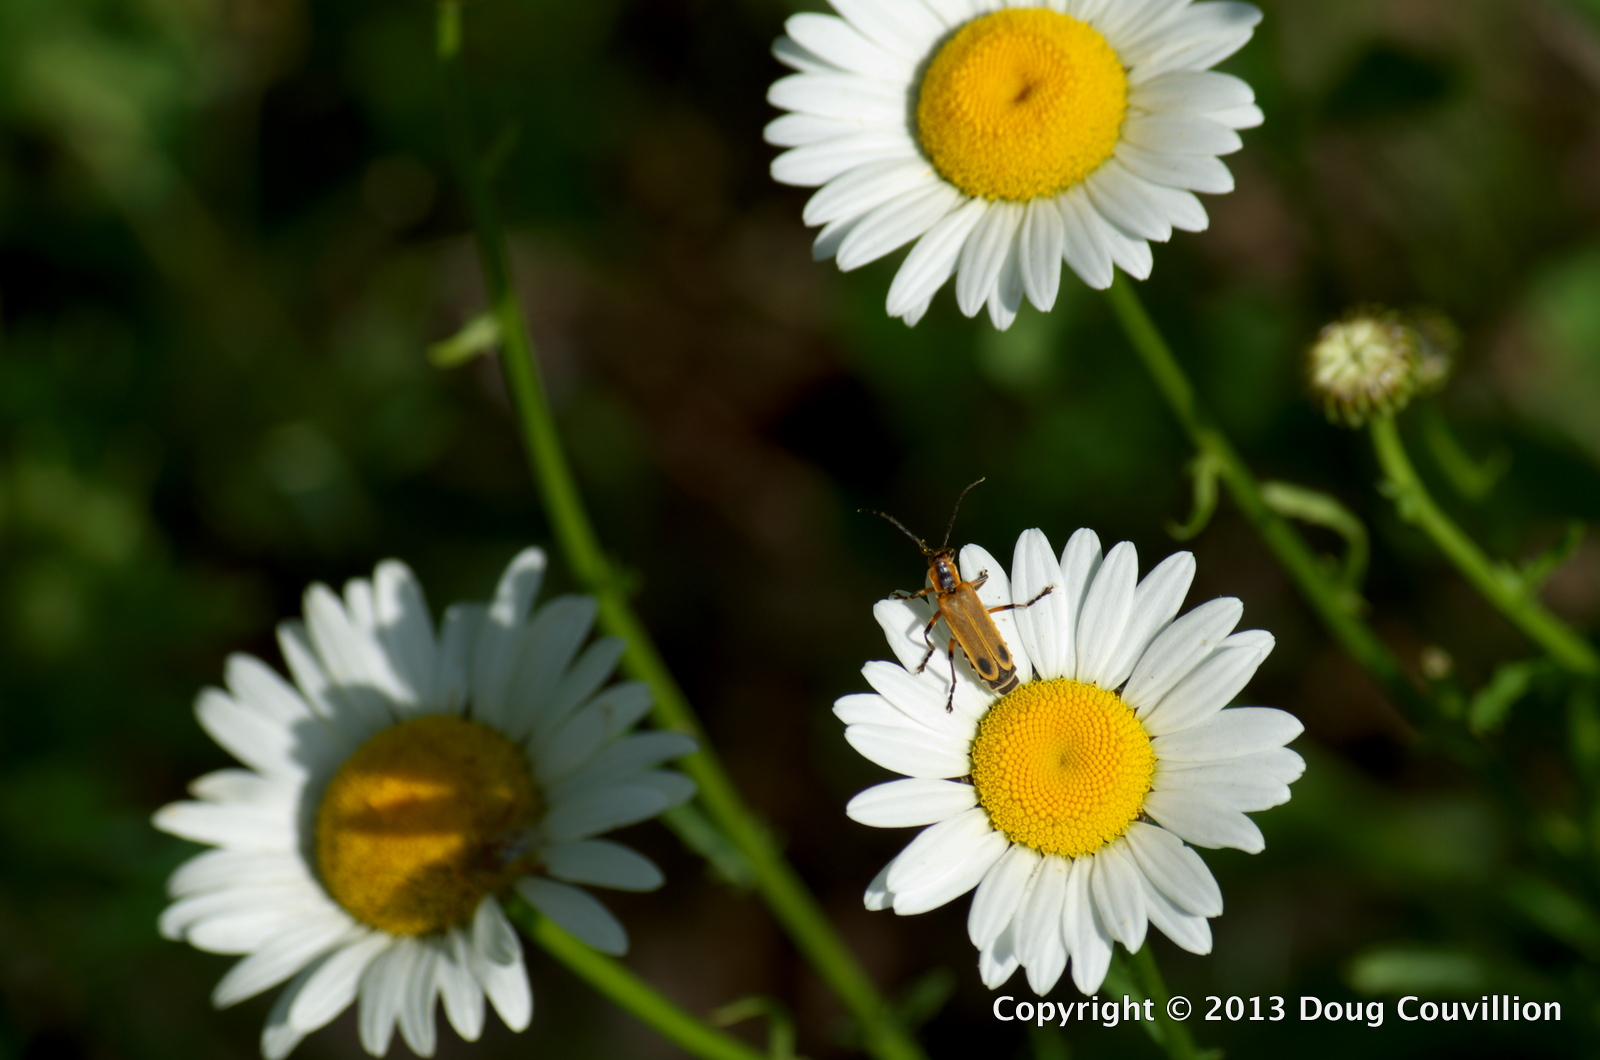 photograph of a Soldier Beetle resting on wildflowers in Powhatan County, Virginia